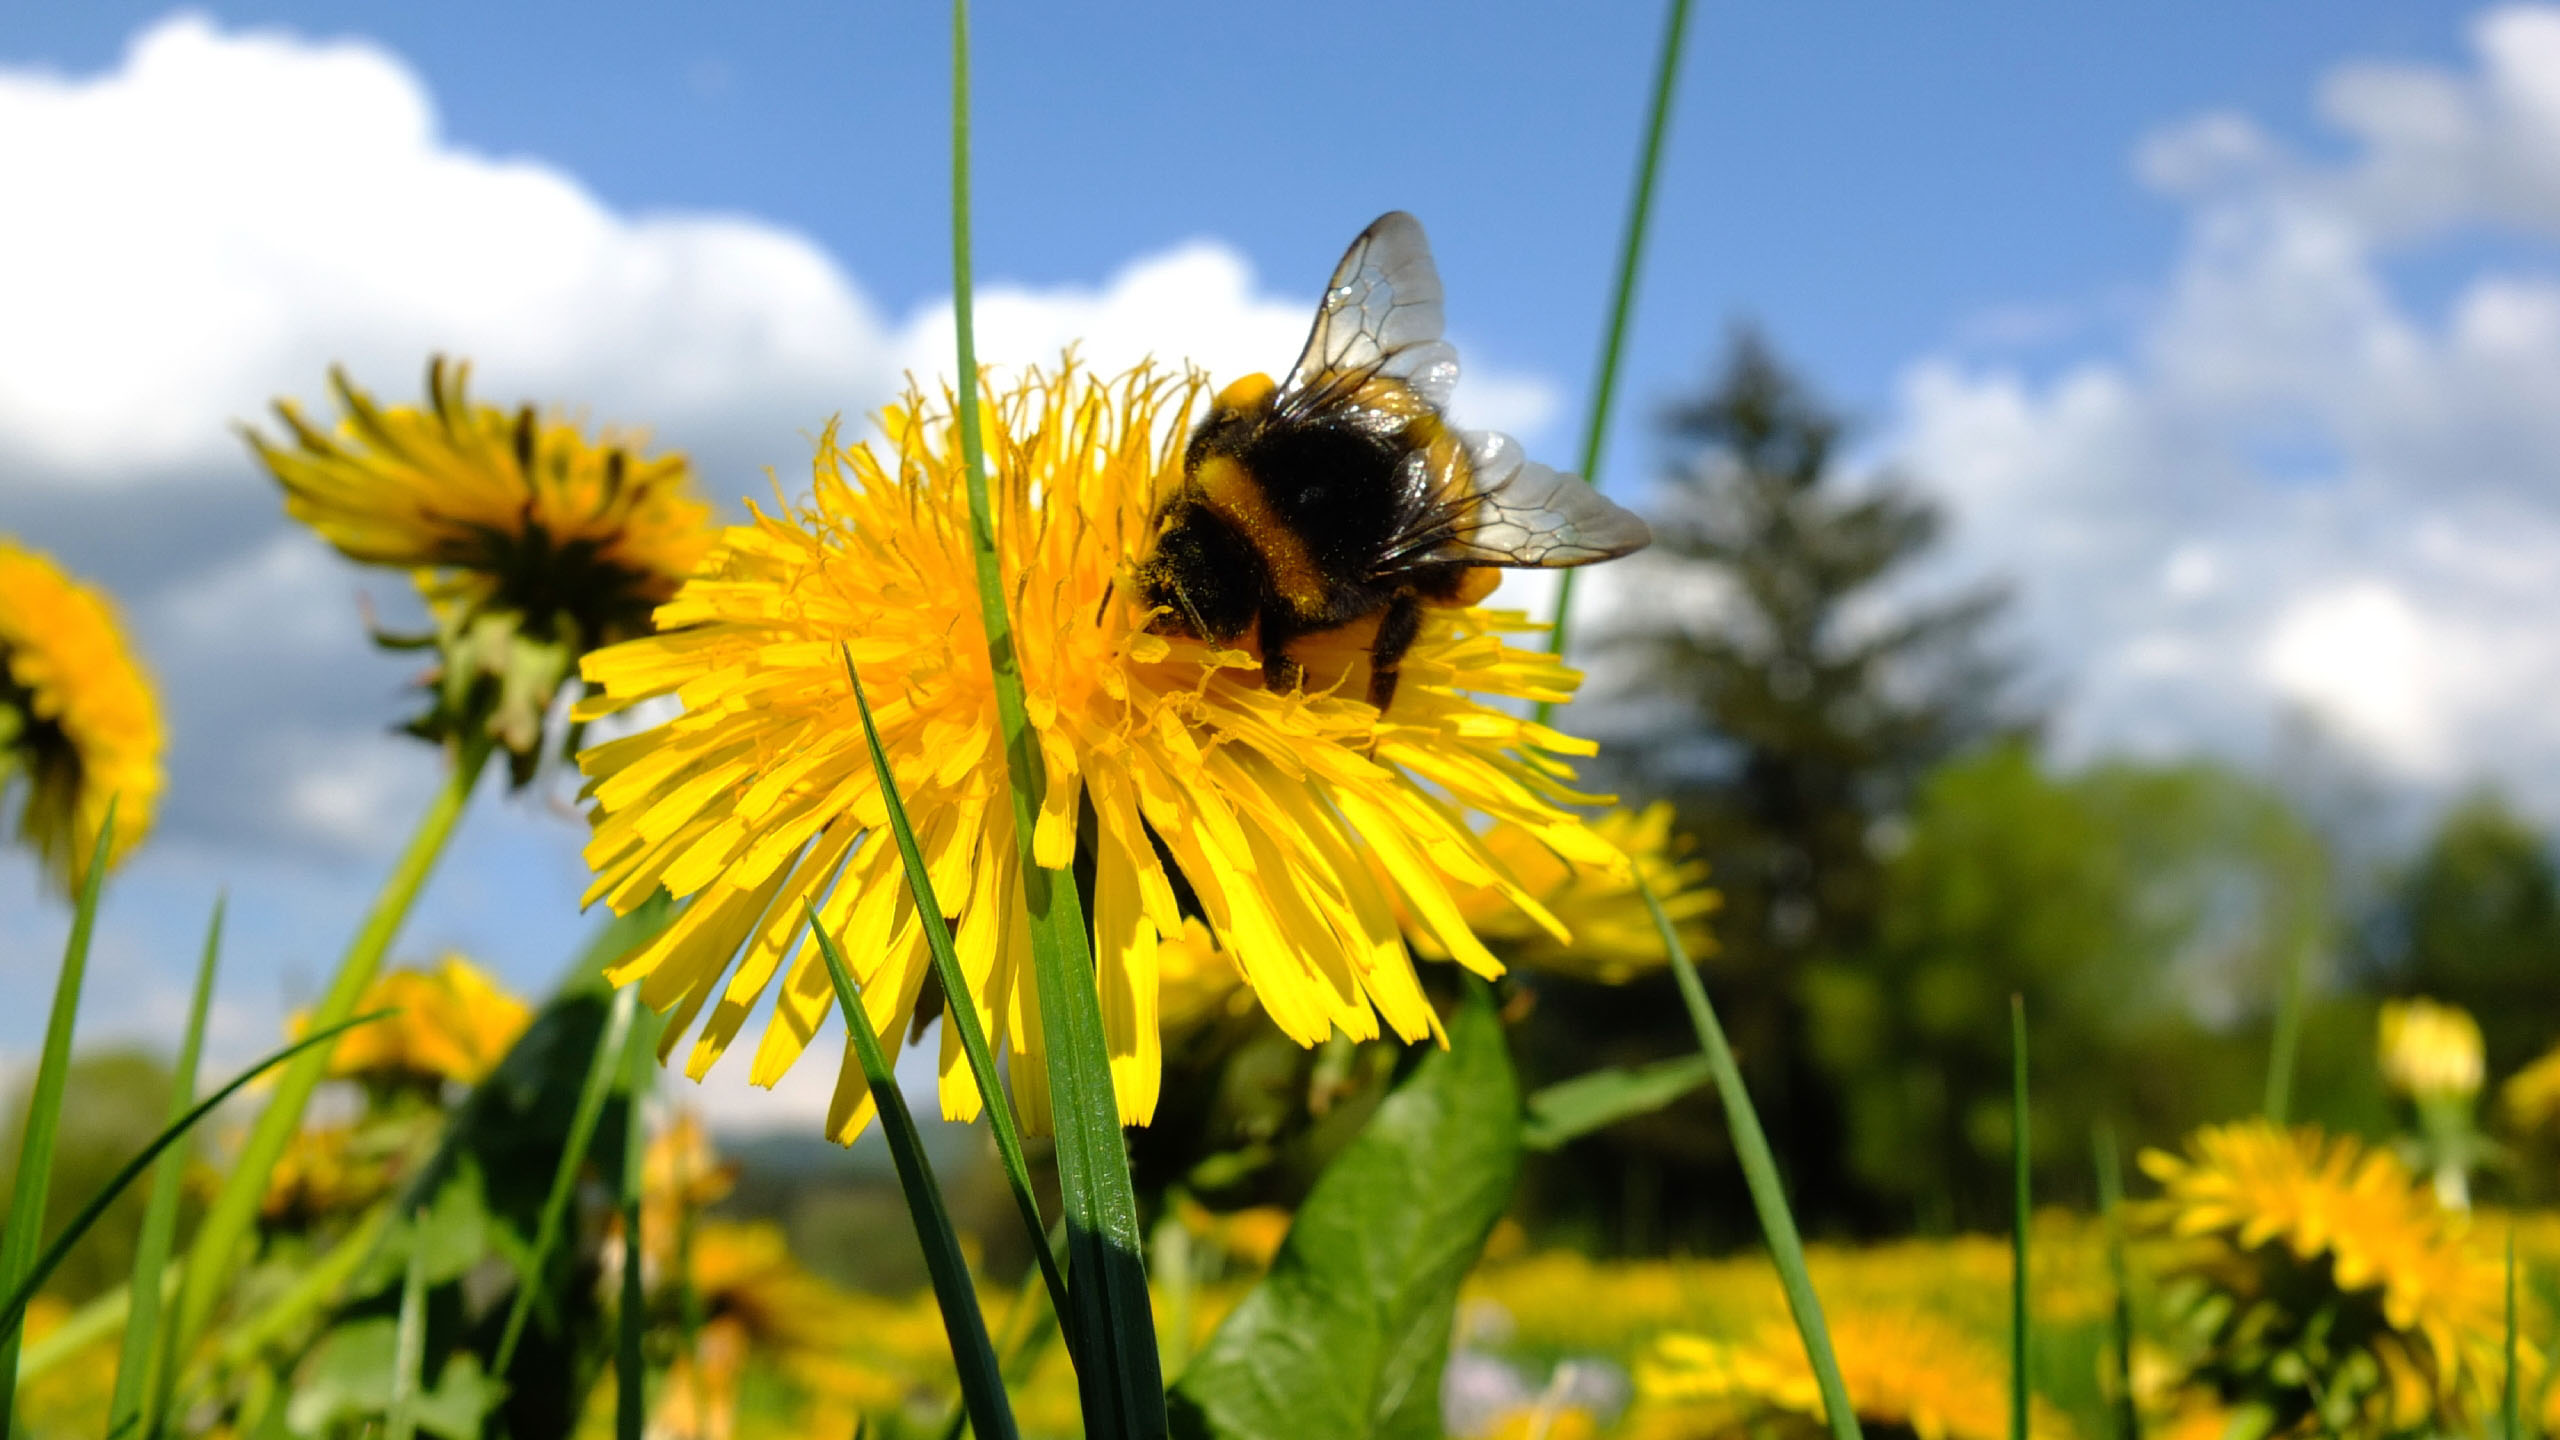 bumble Bee on Dandelion Flower